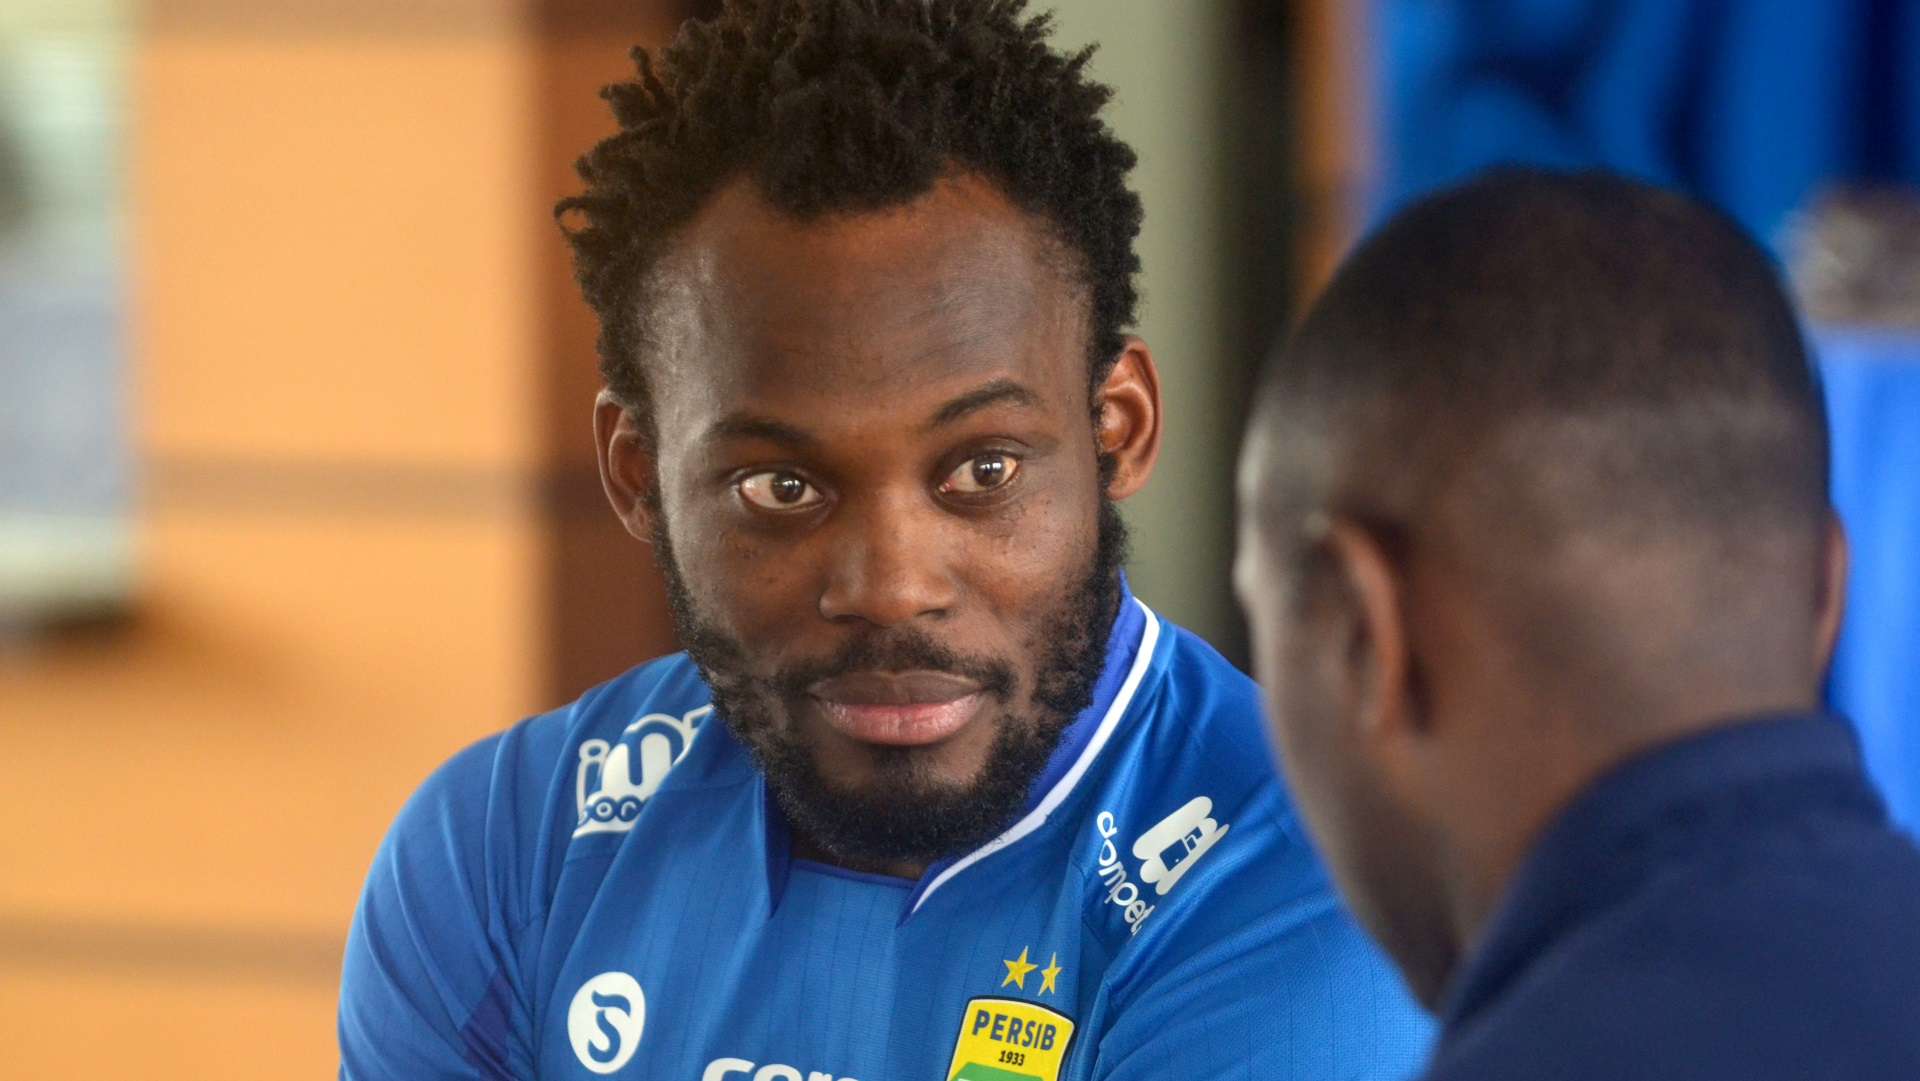 Former Chelsea midfielder Essien reveals how Liverpool approached him